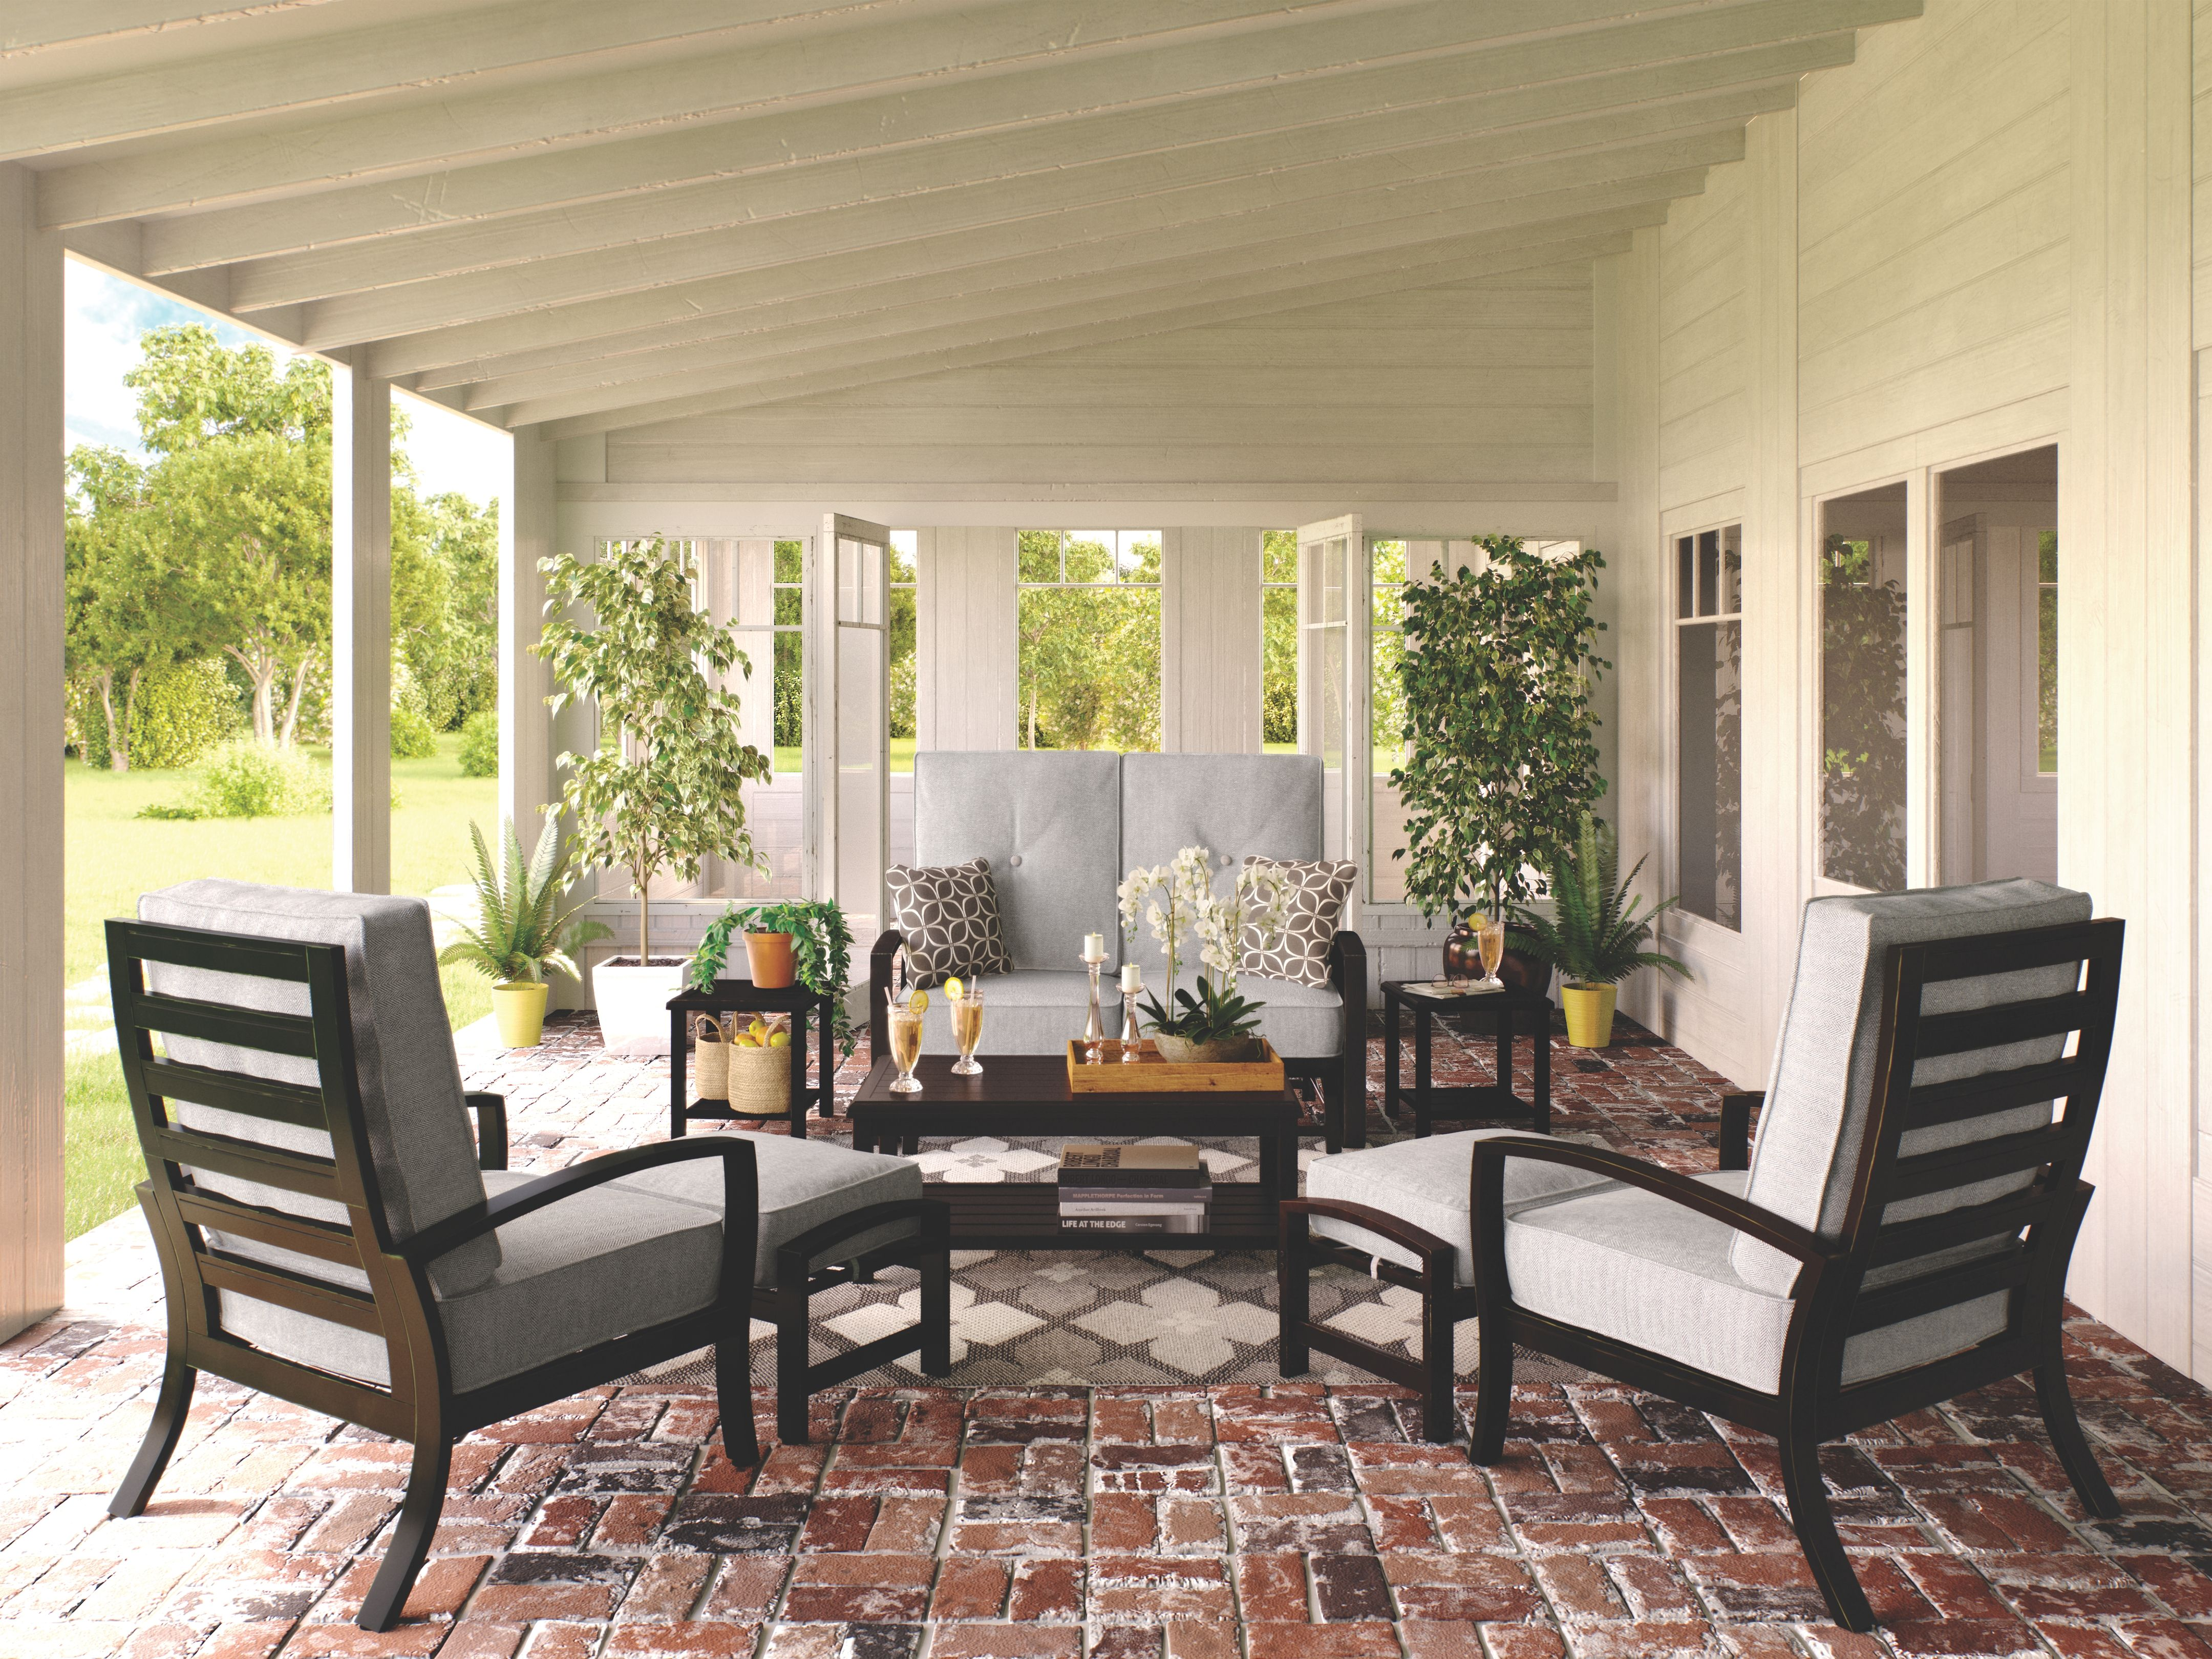 Castle Island End Table Ashley Furniture Homestore In 2021 Outdoor Living Space Patio Decor Outdoor Conversation Sets